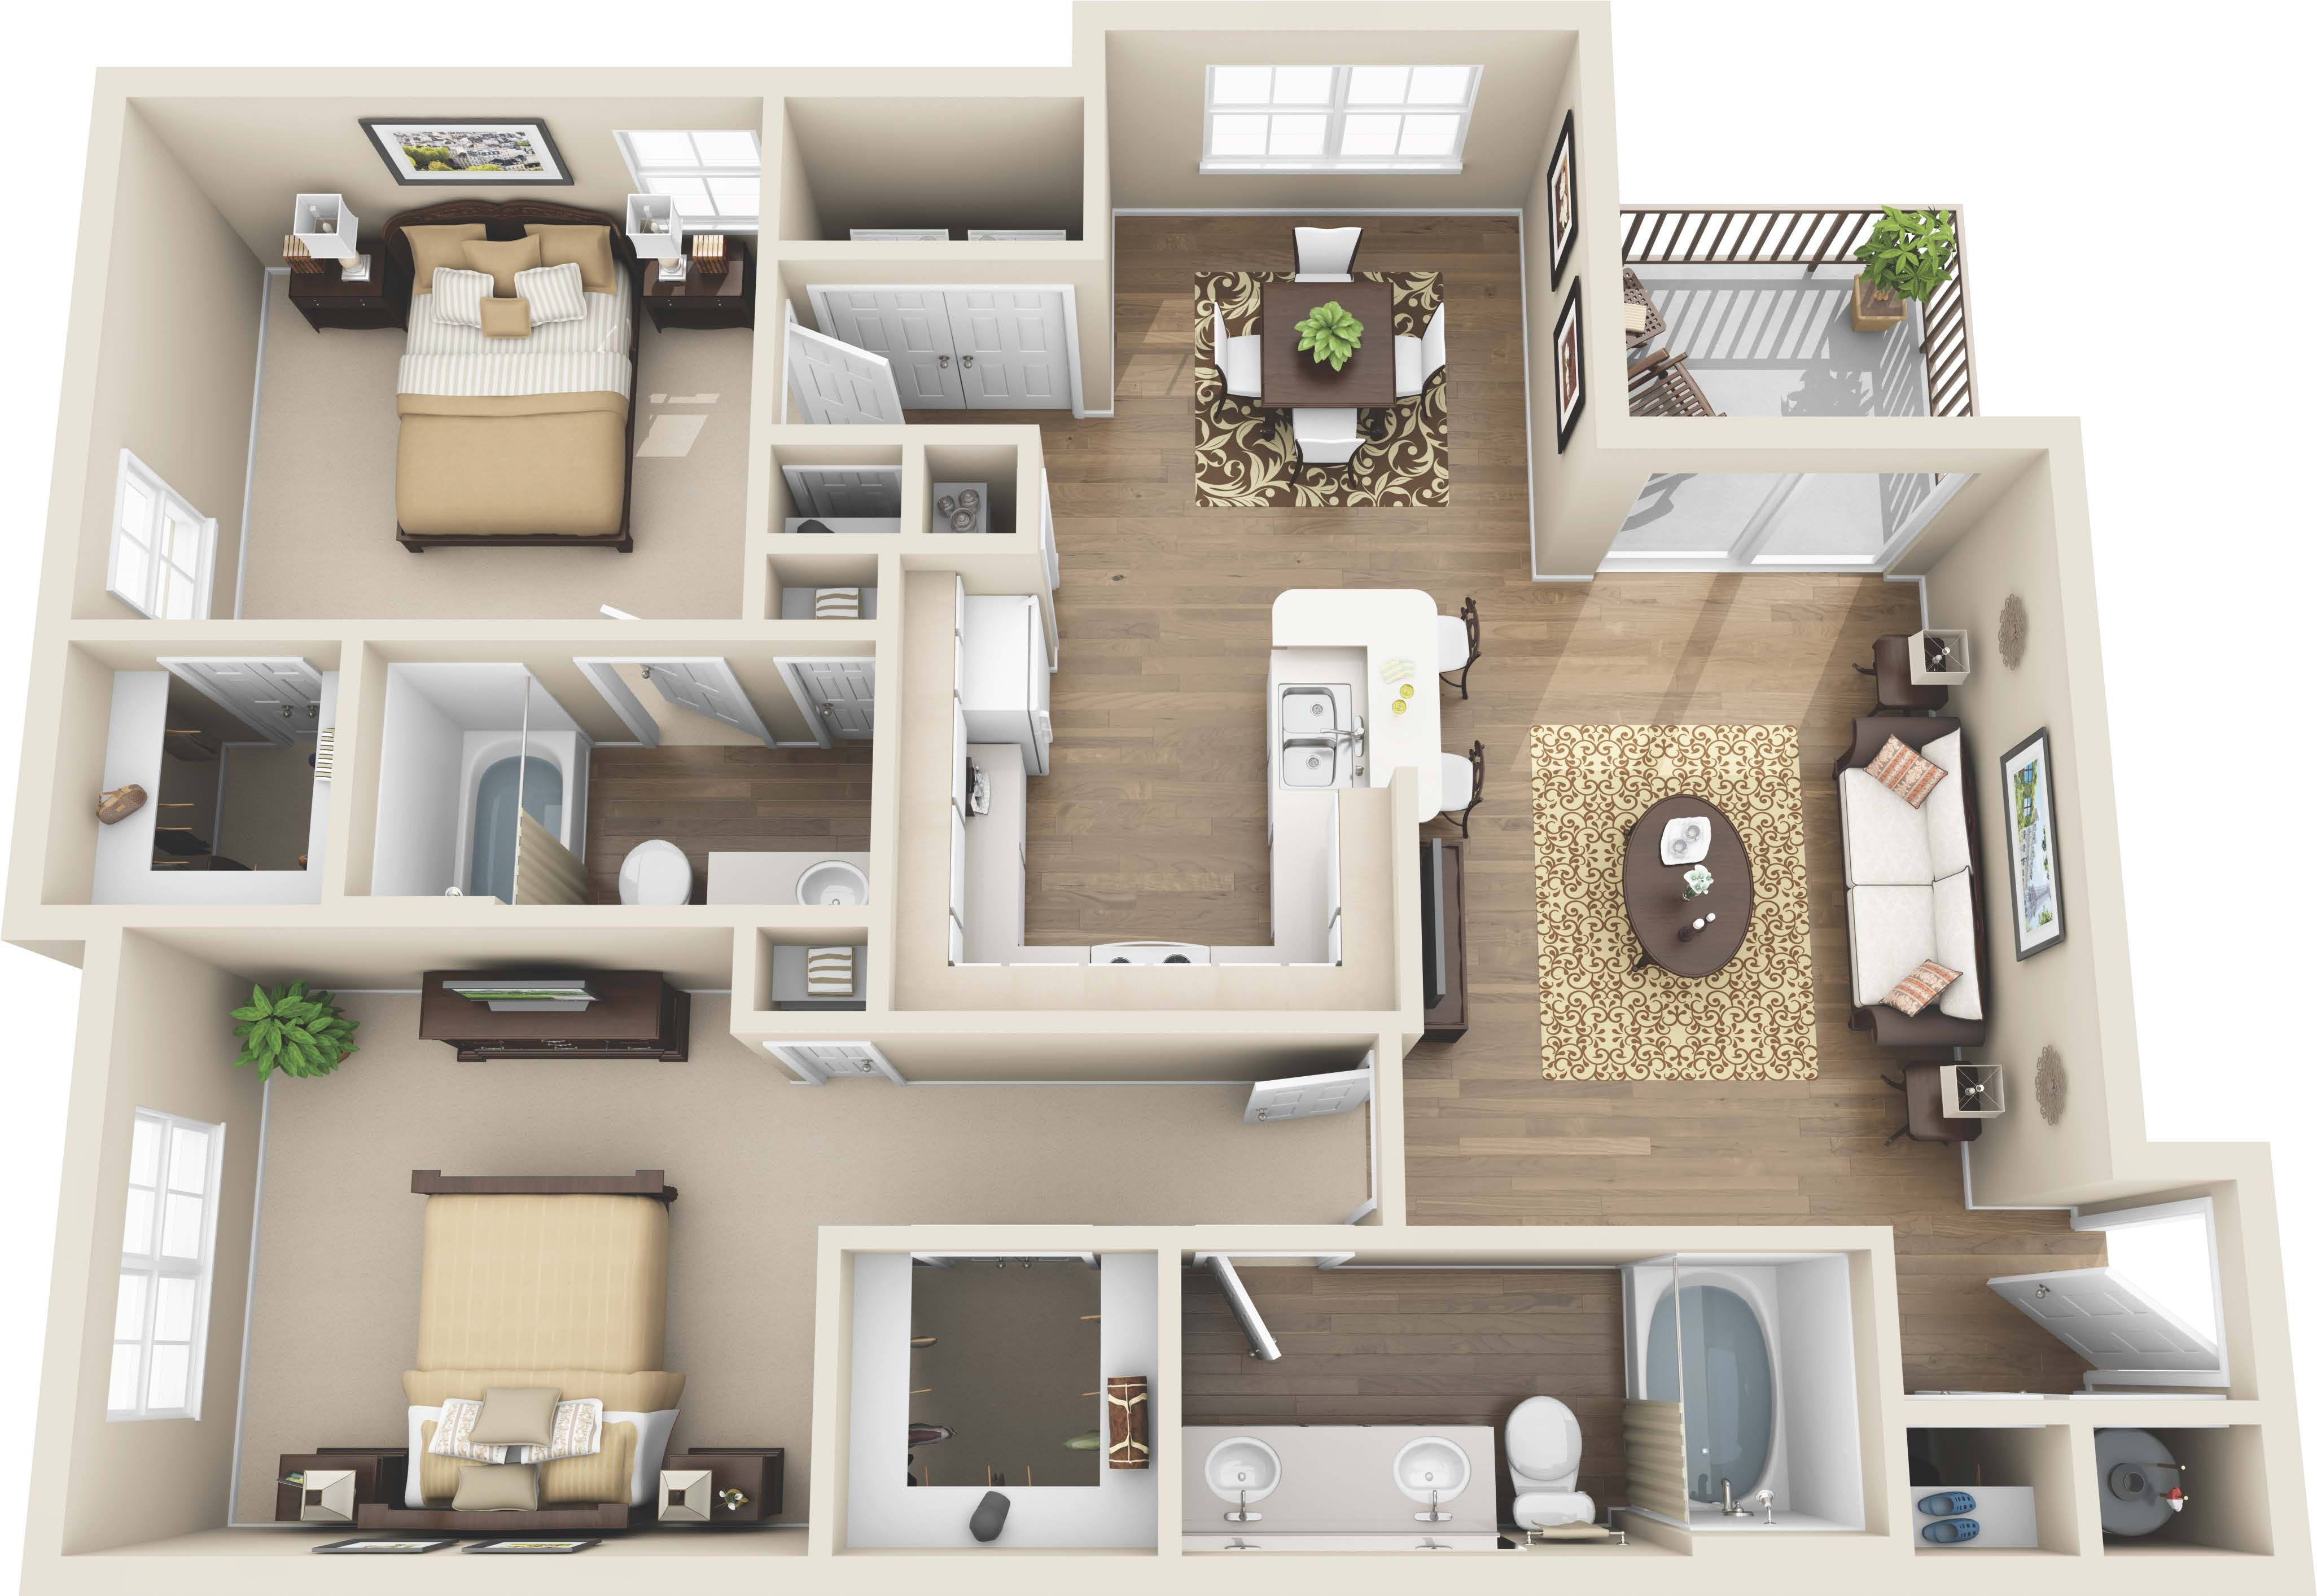 Luxury 1 And 2 Bedroom Colorado Springs Co Apartments Coloradosprings Colorado Apartment Steadfast Sims House Design Two Bedroom Apartments Floor Plans